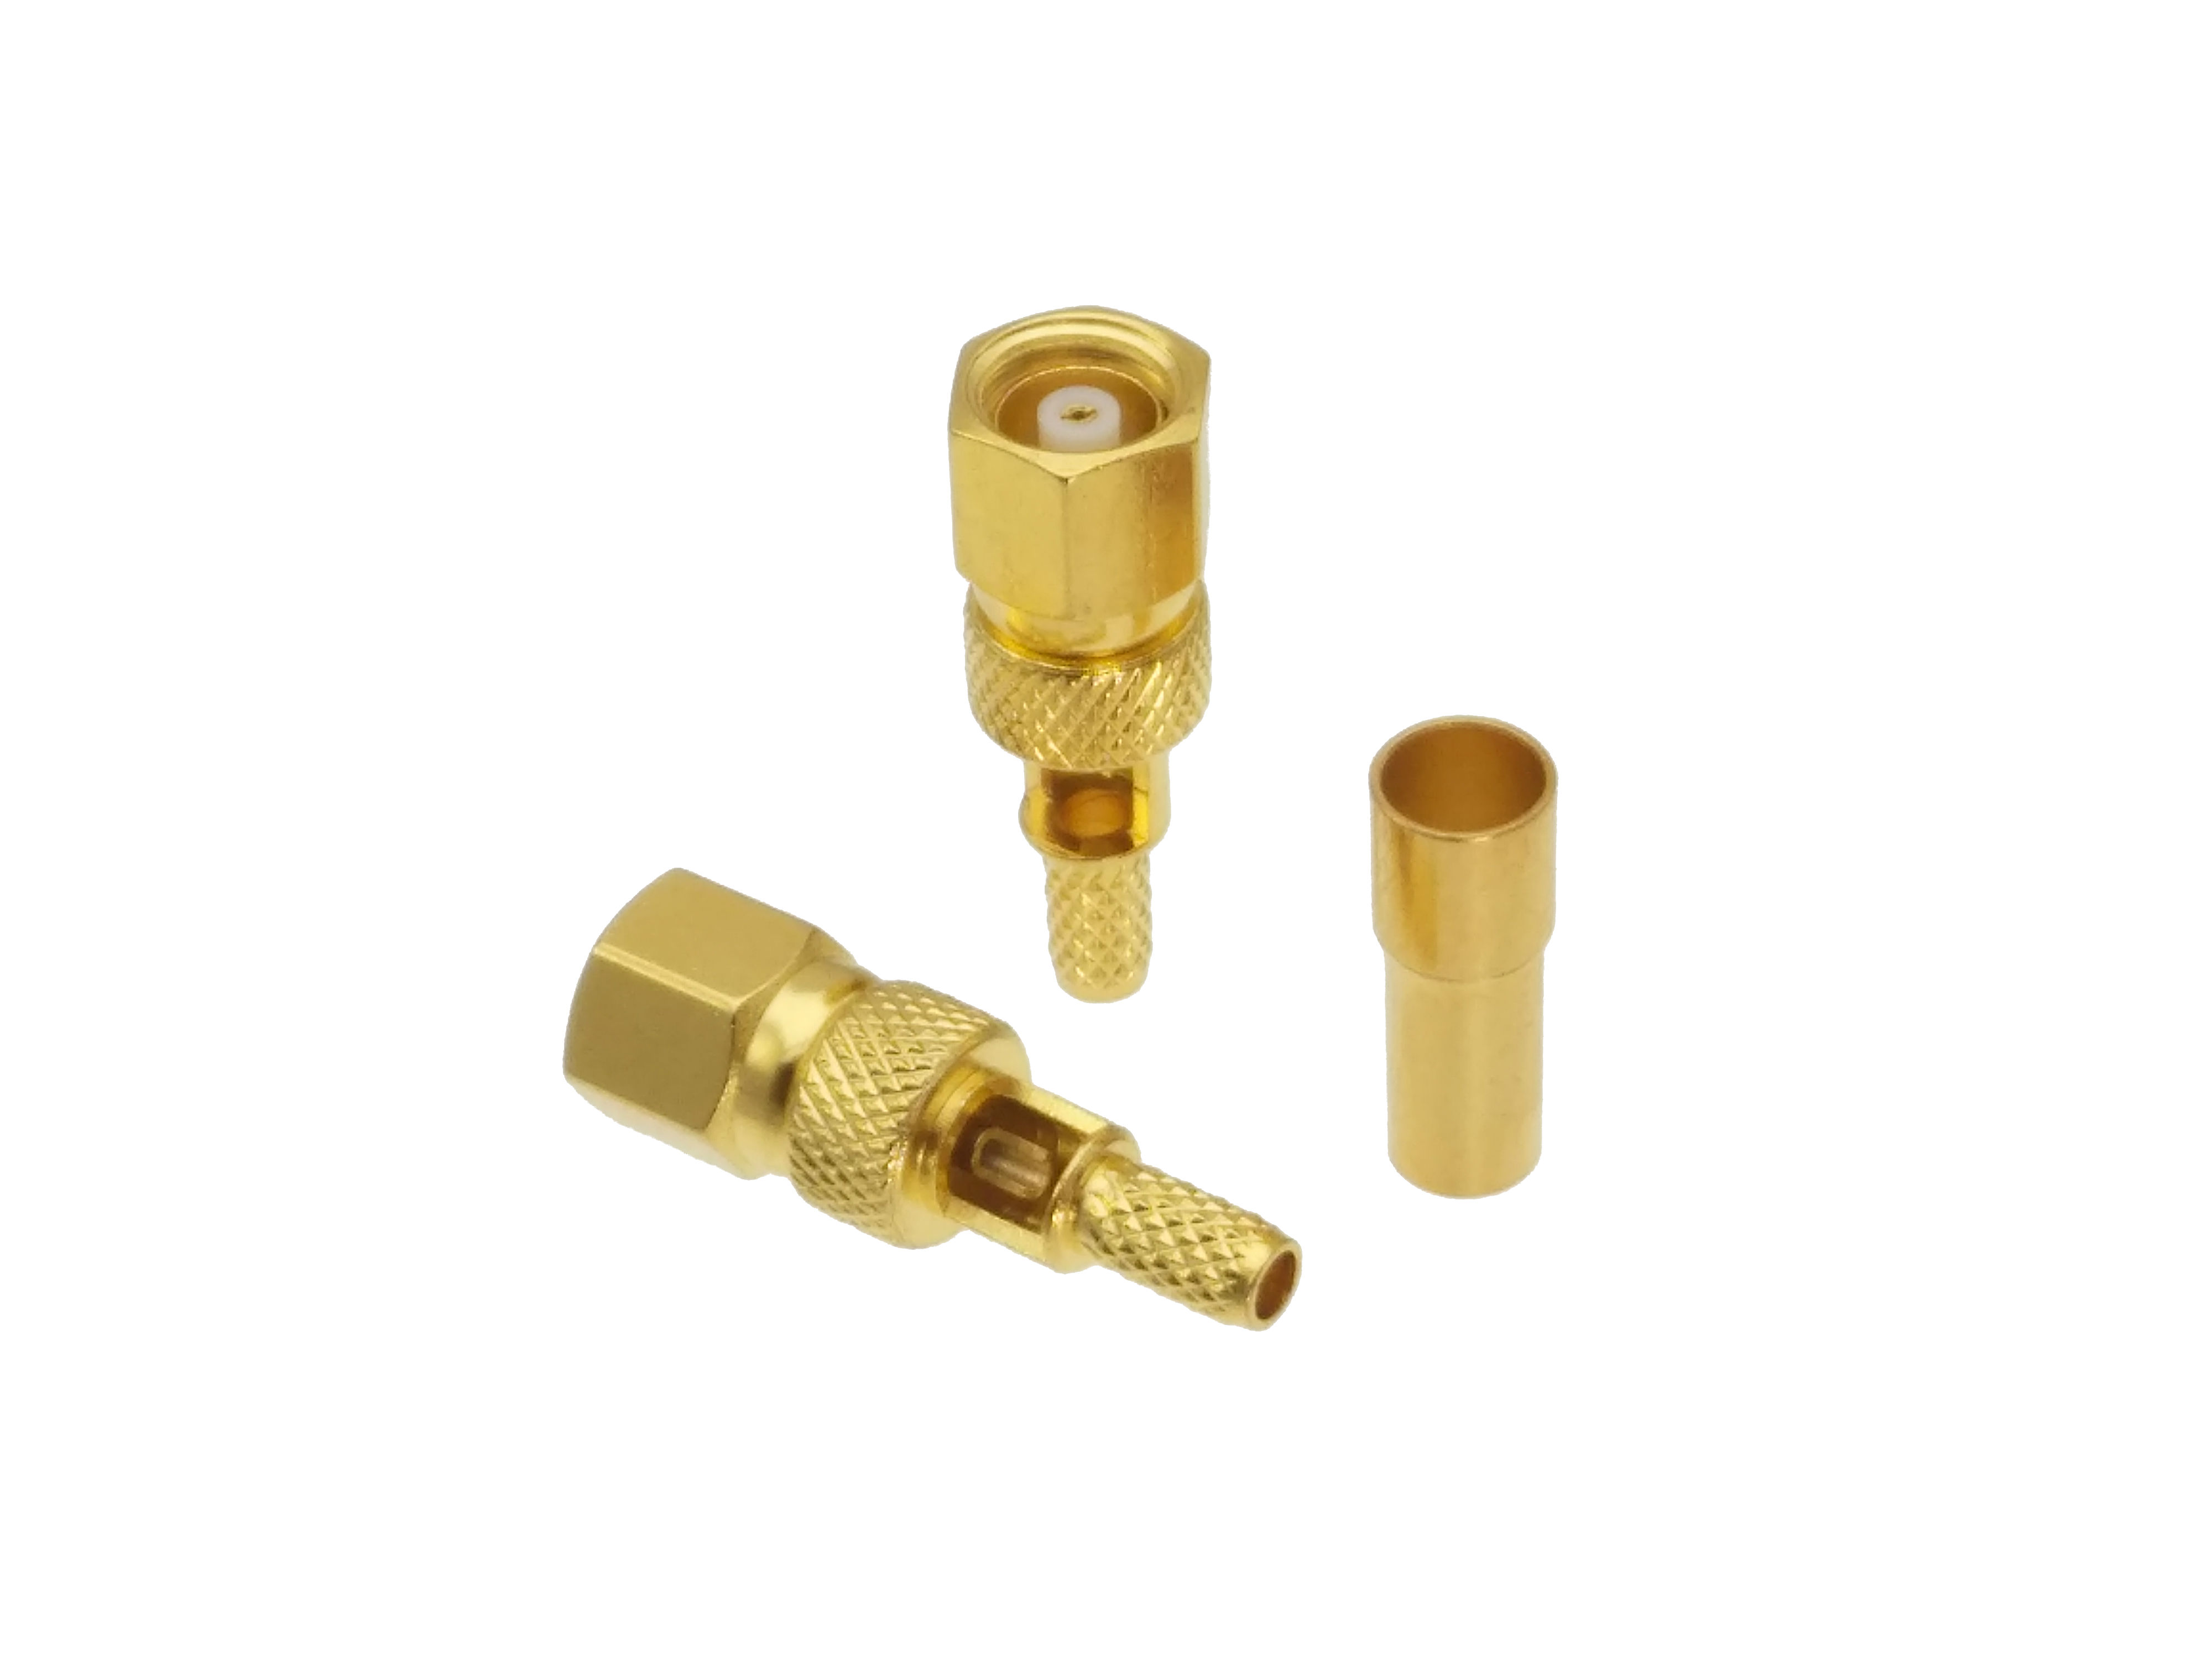 Connector SMC Female Jack Crimp RG174 RG316 LMR100 Cable RF Coaxial Straight